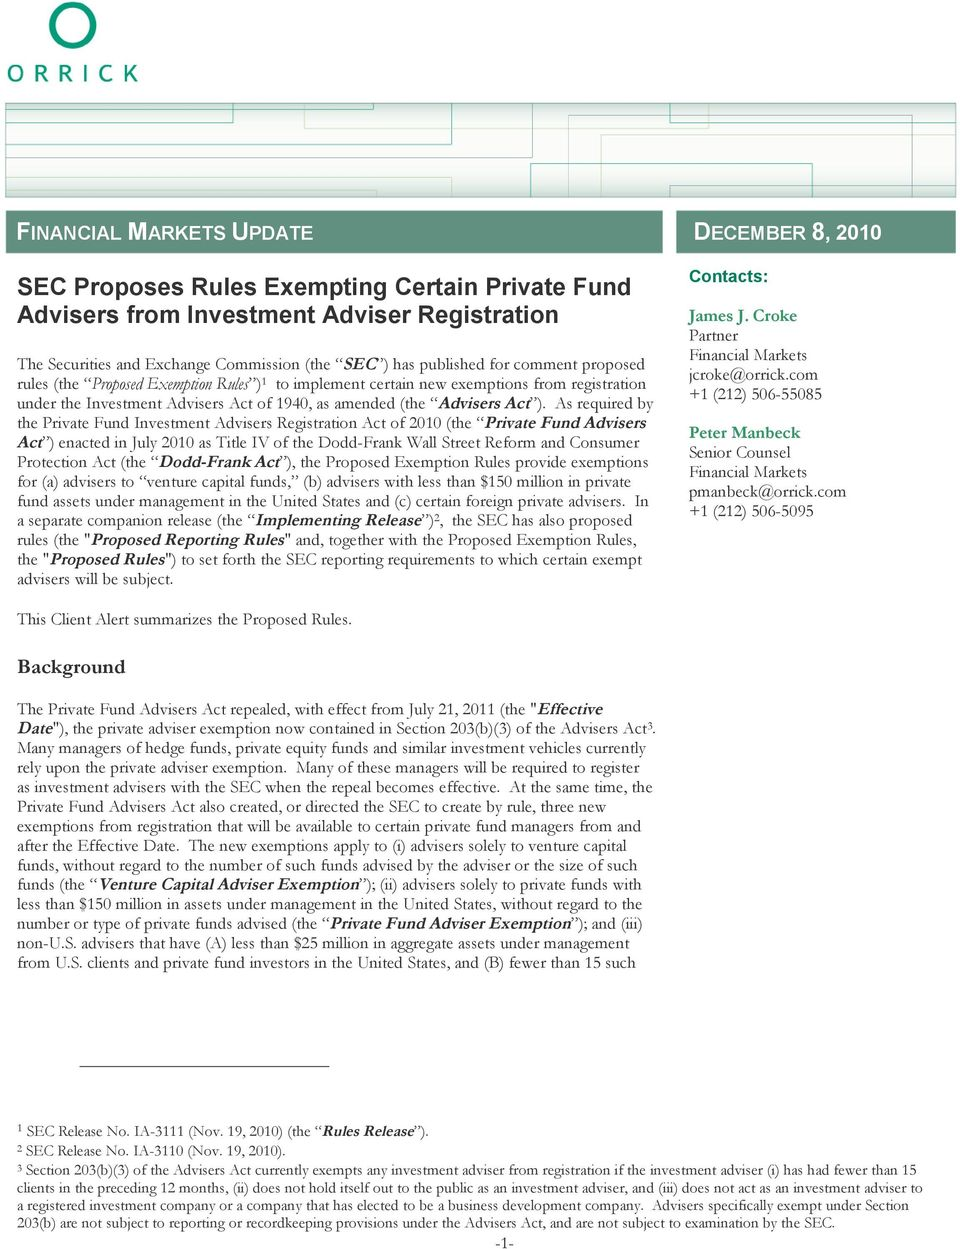 As required by the Private Fund Investment Advisers Registration Act of 2010 (the Private Fund Advisers Act ) enacted in July 2010 as Title IV of the Dodd-Frank Wall Street Reform and Consumer